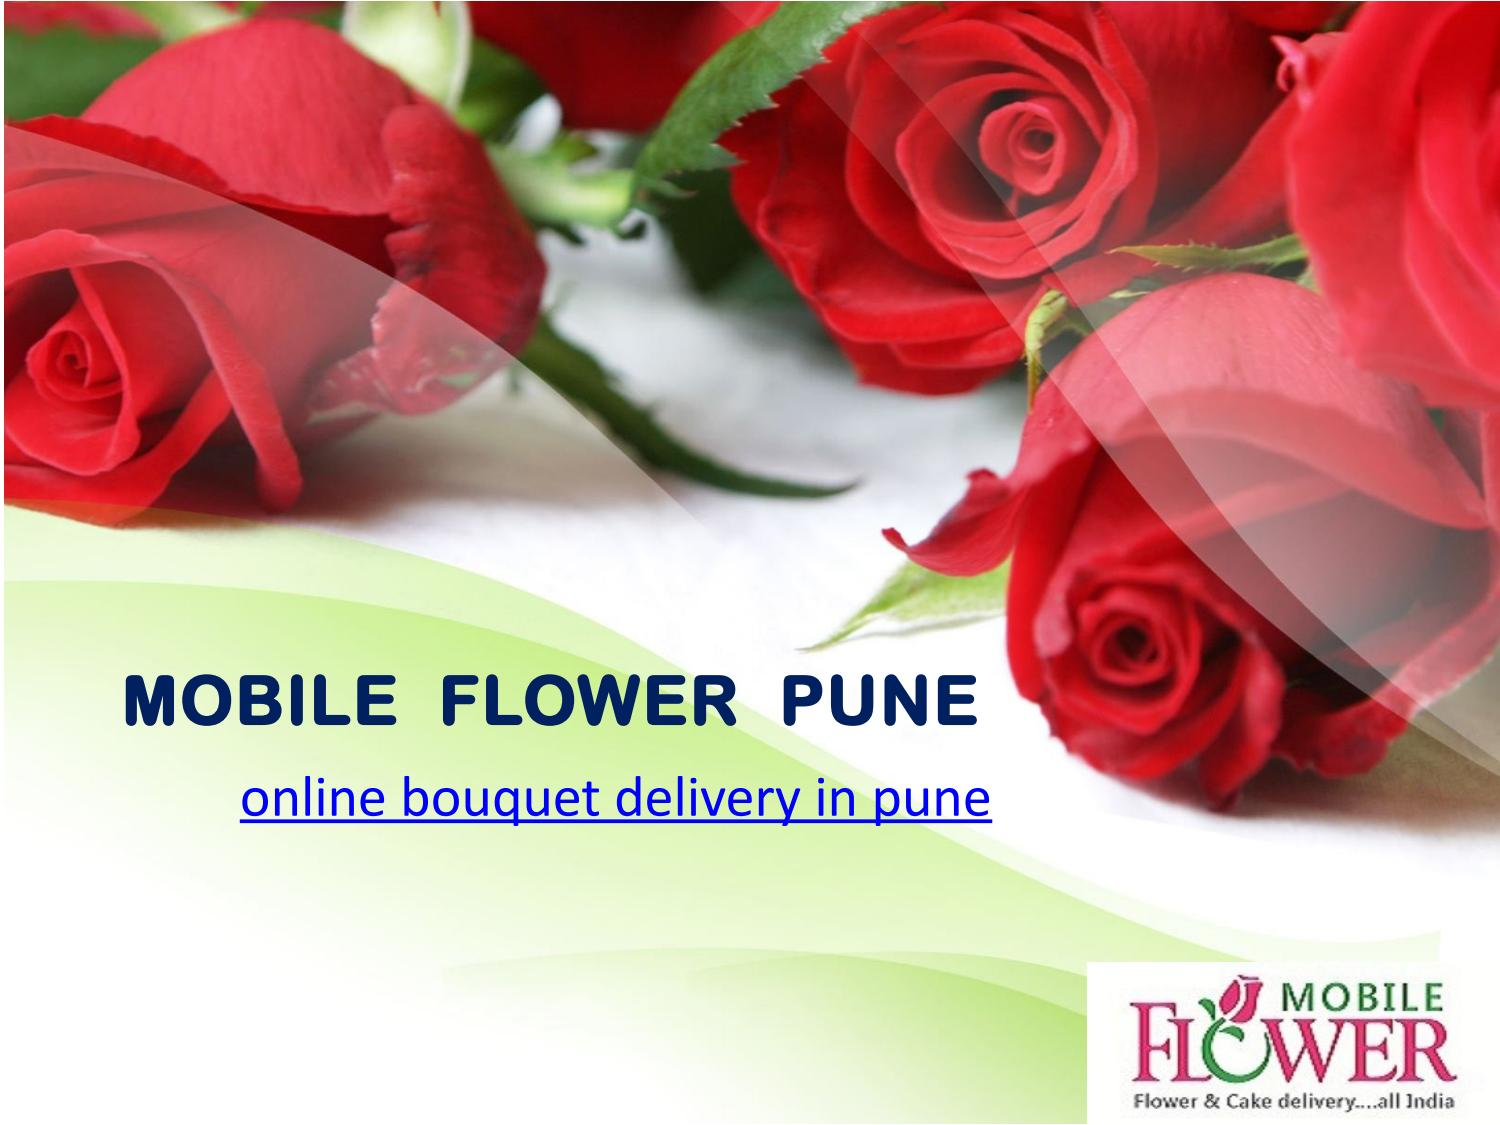 Online bouquet delivery in pune by mobile flower pune issuu izmirmasajfo